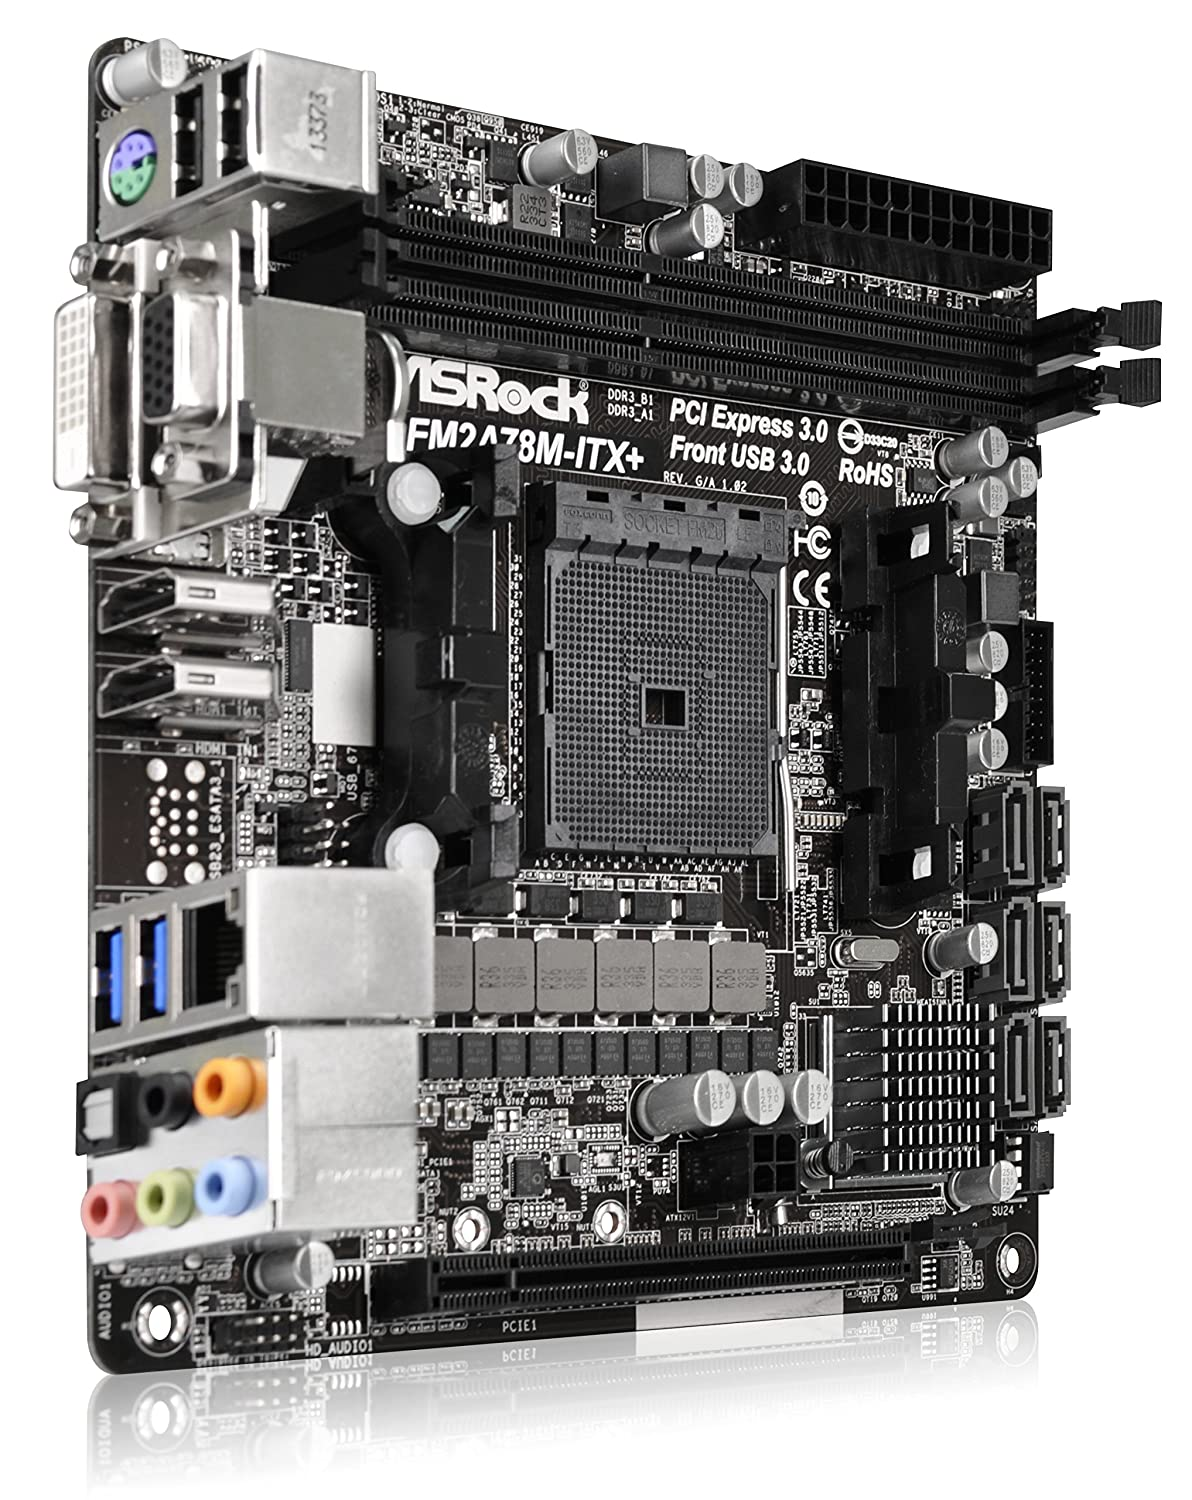 ASROCK FM2A78M-ITX+ WINDOWS 8 DRIVER DOWNLOAD